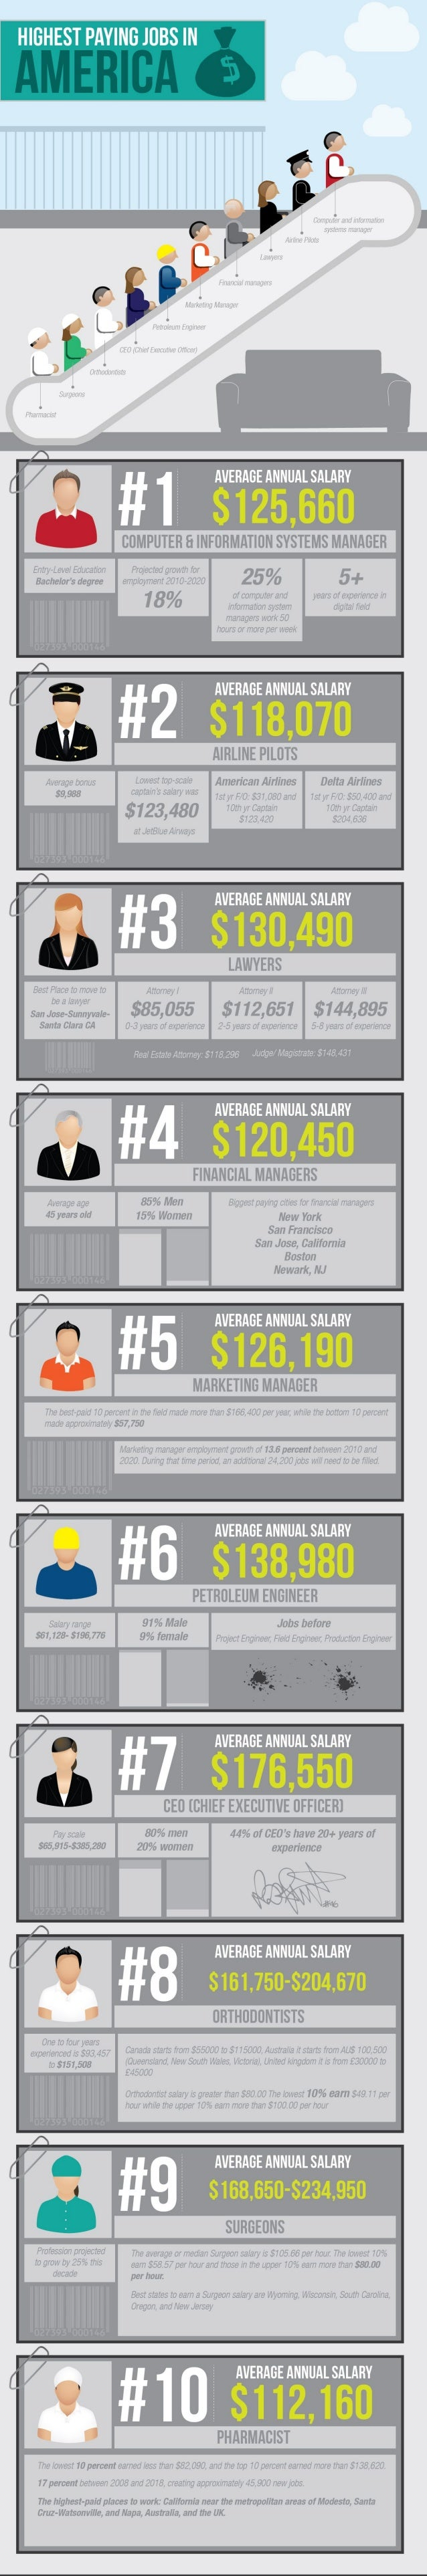 Highest paying-jobs-in-america